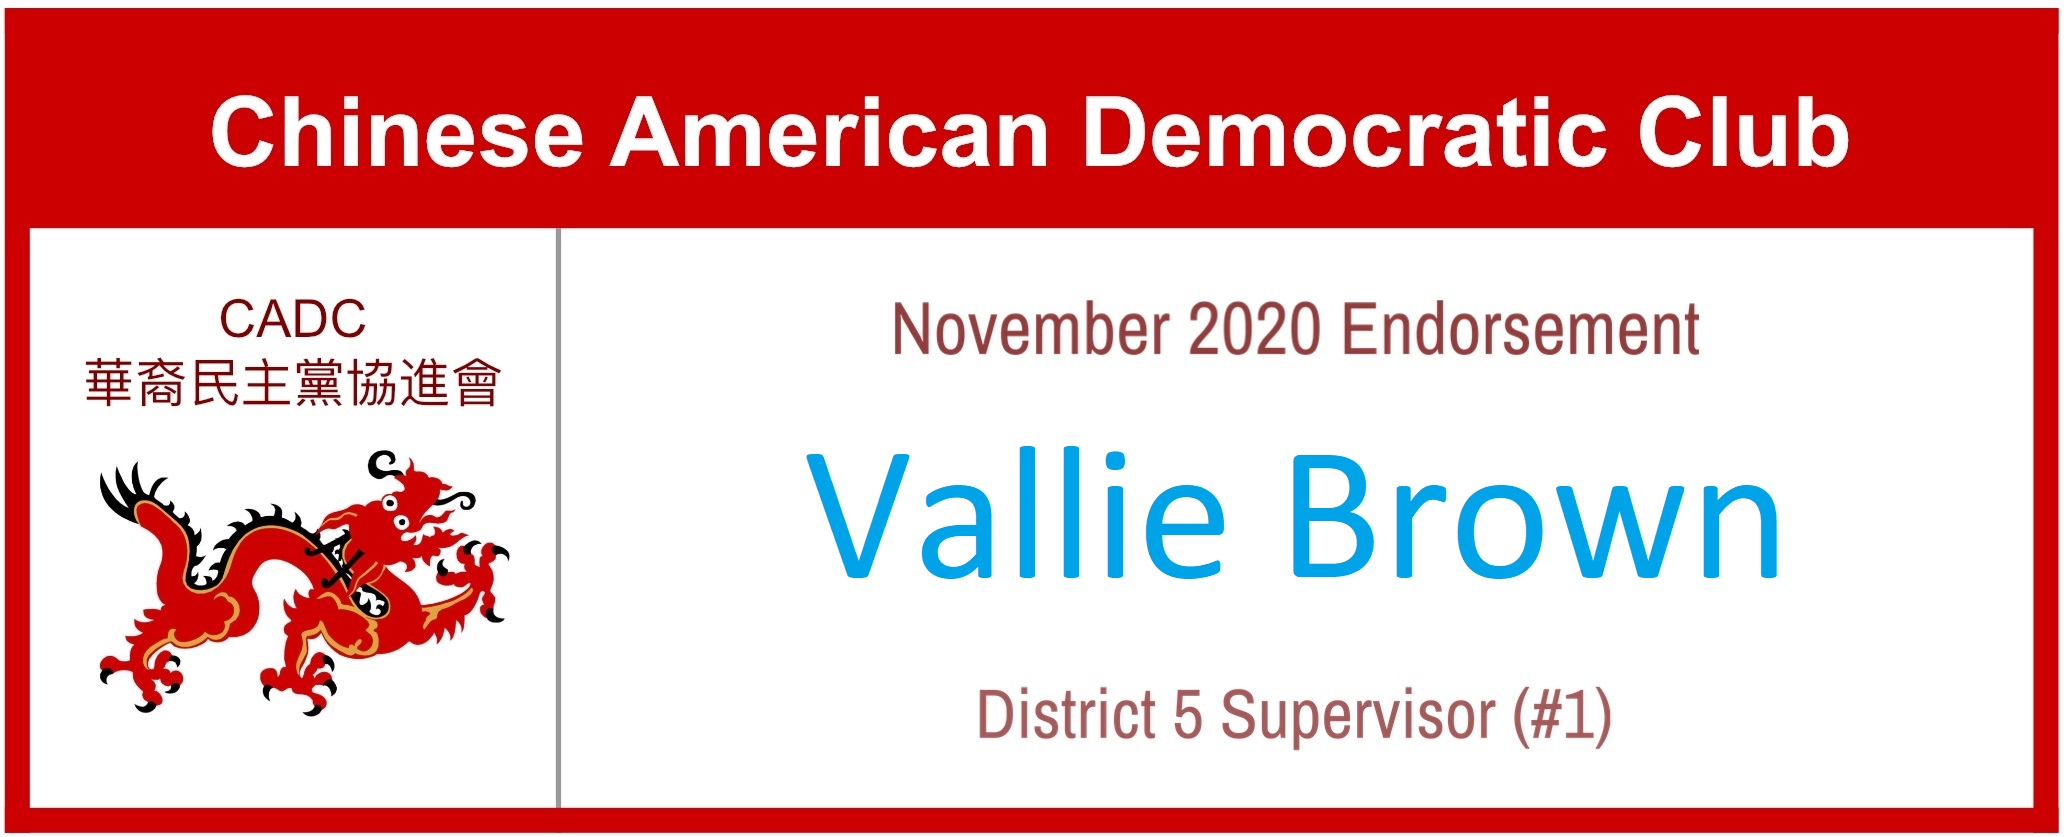 Vallie Brown for District 5 Supervisor - CADC #1 Endorsement November 2020